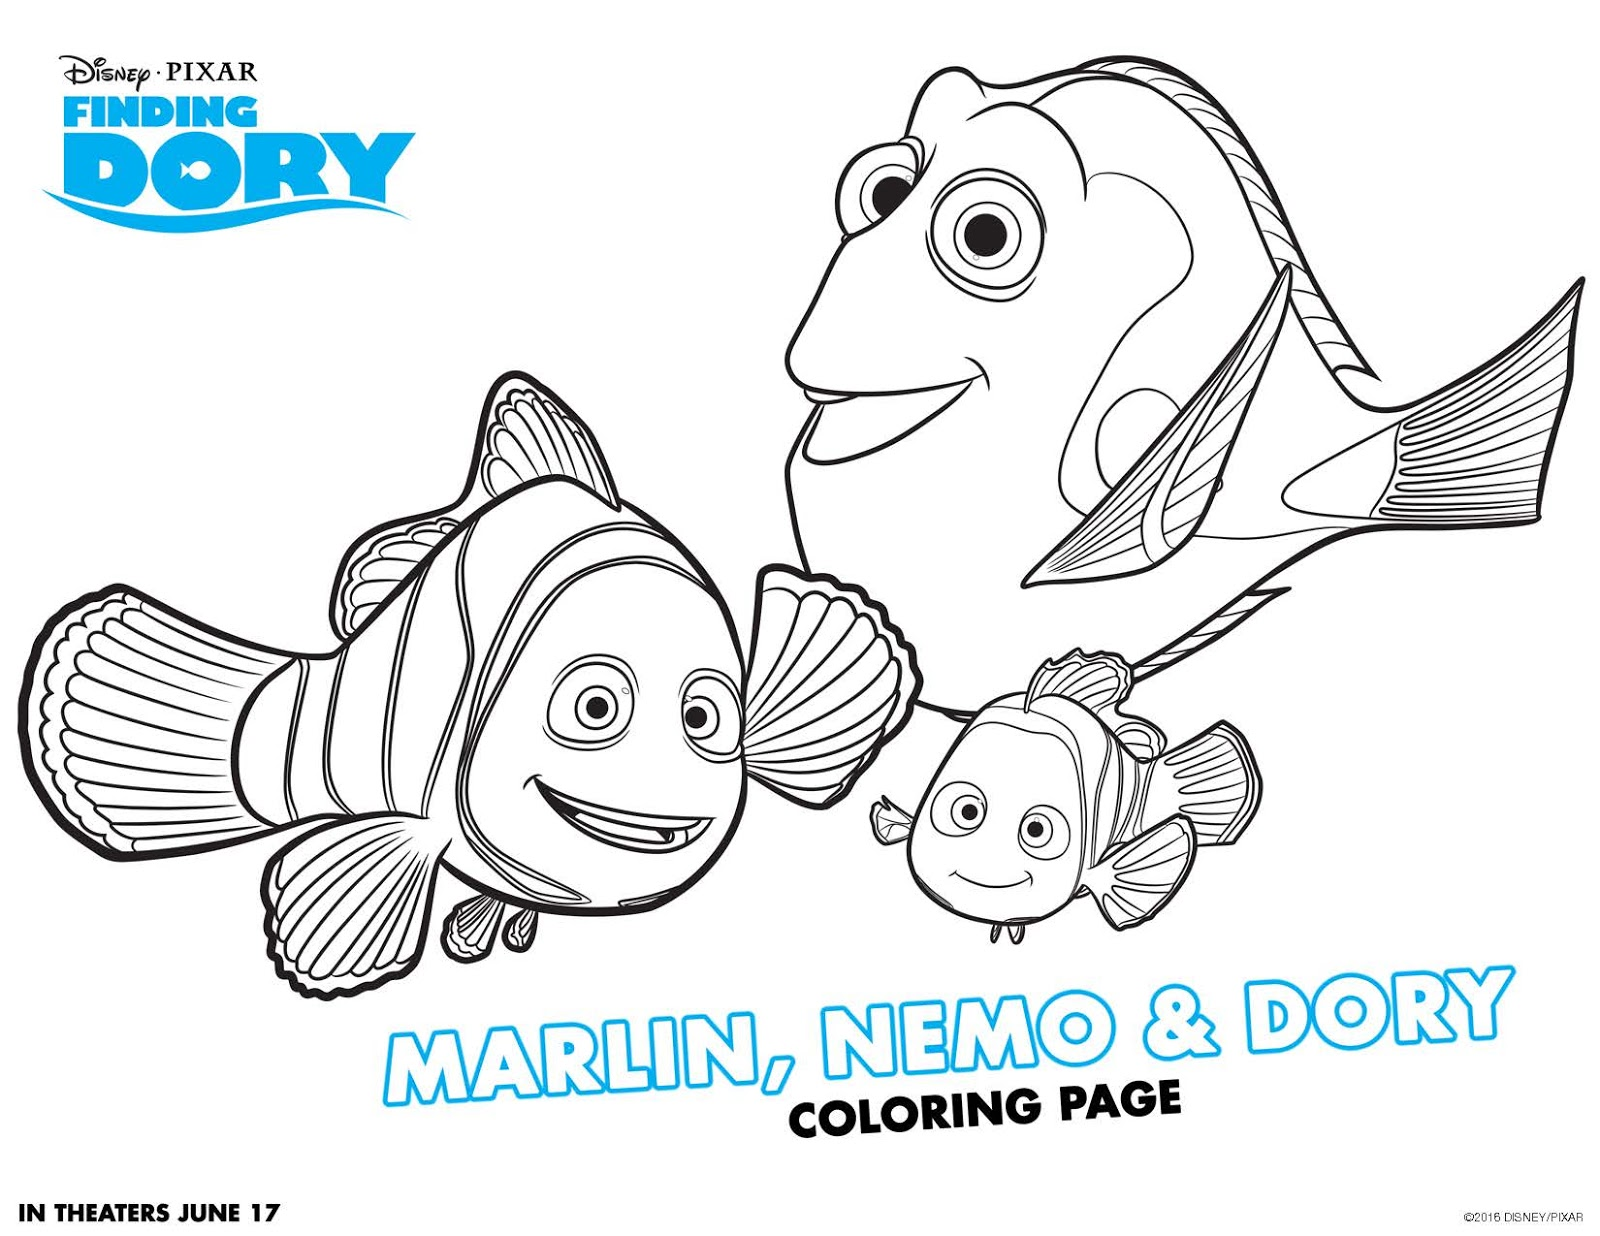 Nemo Y Dory Para Colorear: Be Brave, Keep Going: Free Finding Dory Coloring Pages